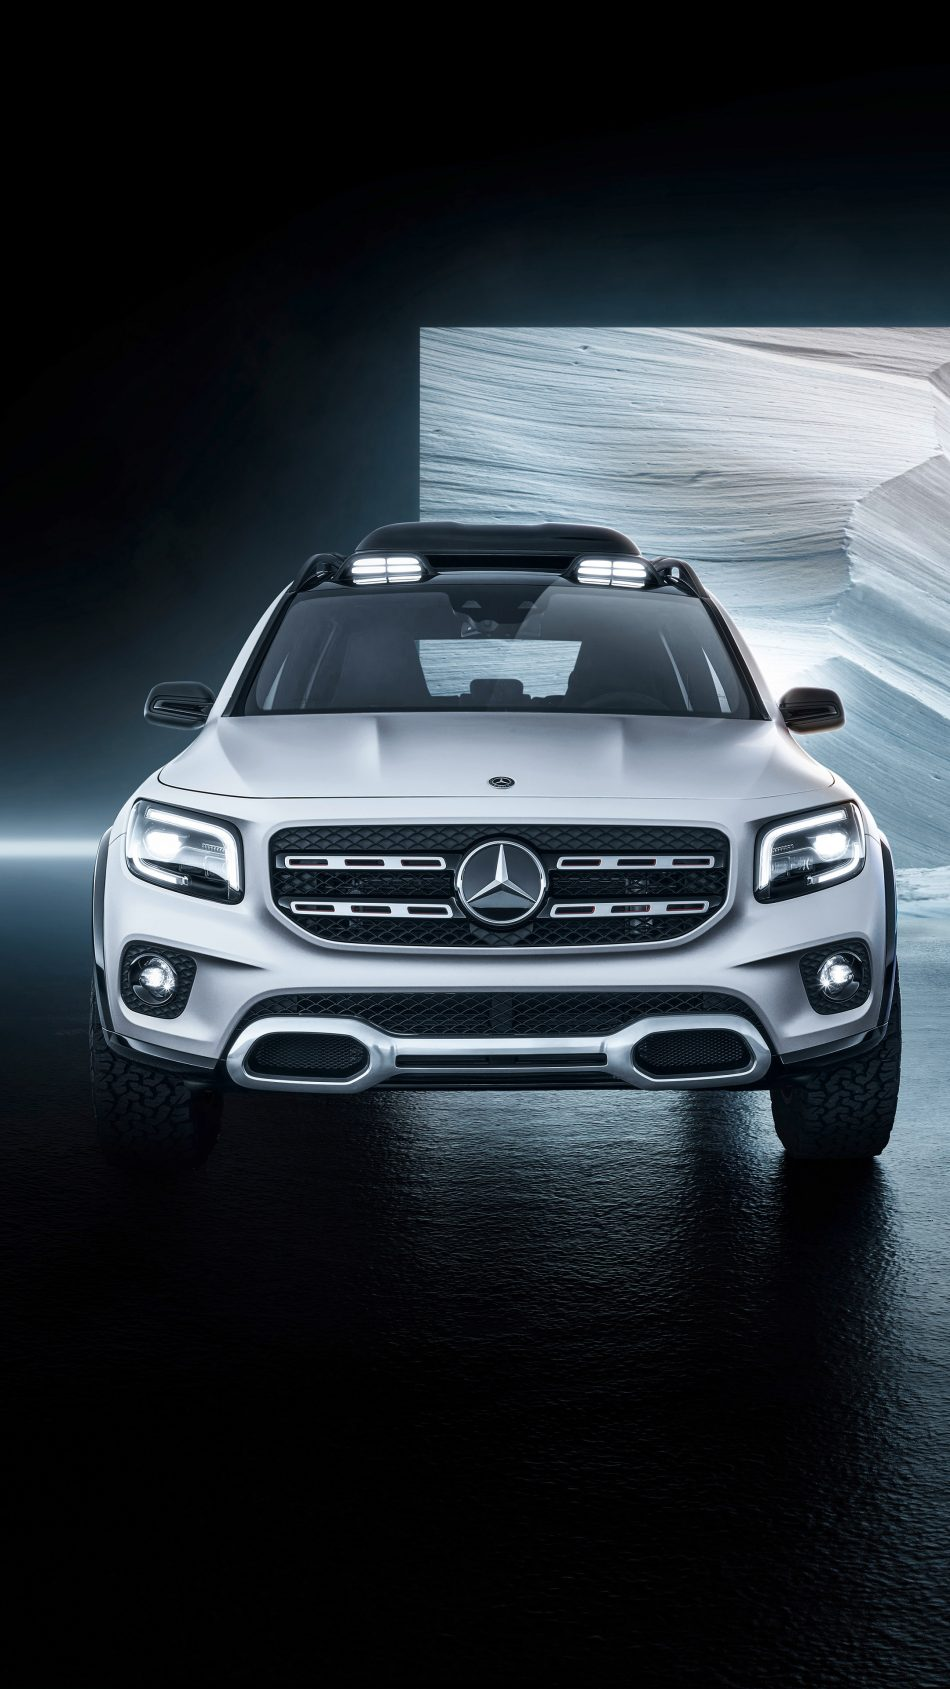 Download Mercedes Benz Concept Glb 2019 Free Pure 4k Ultra Hd Mobile